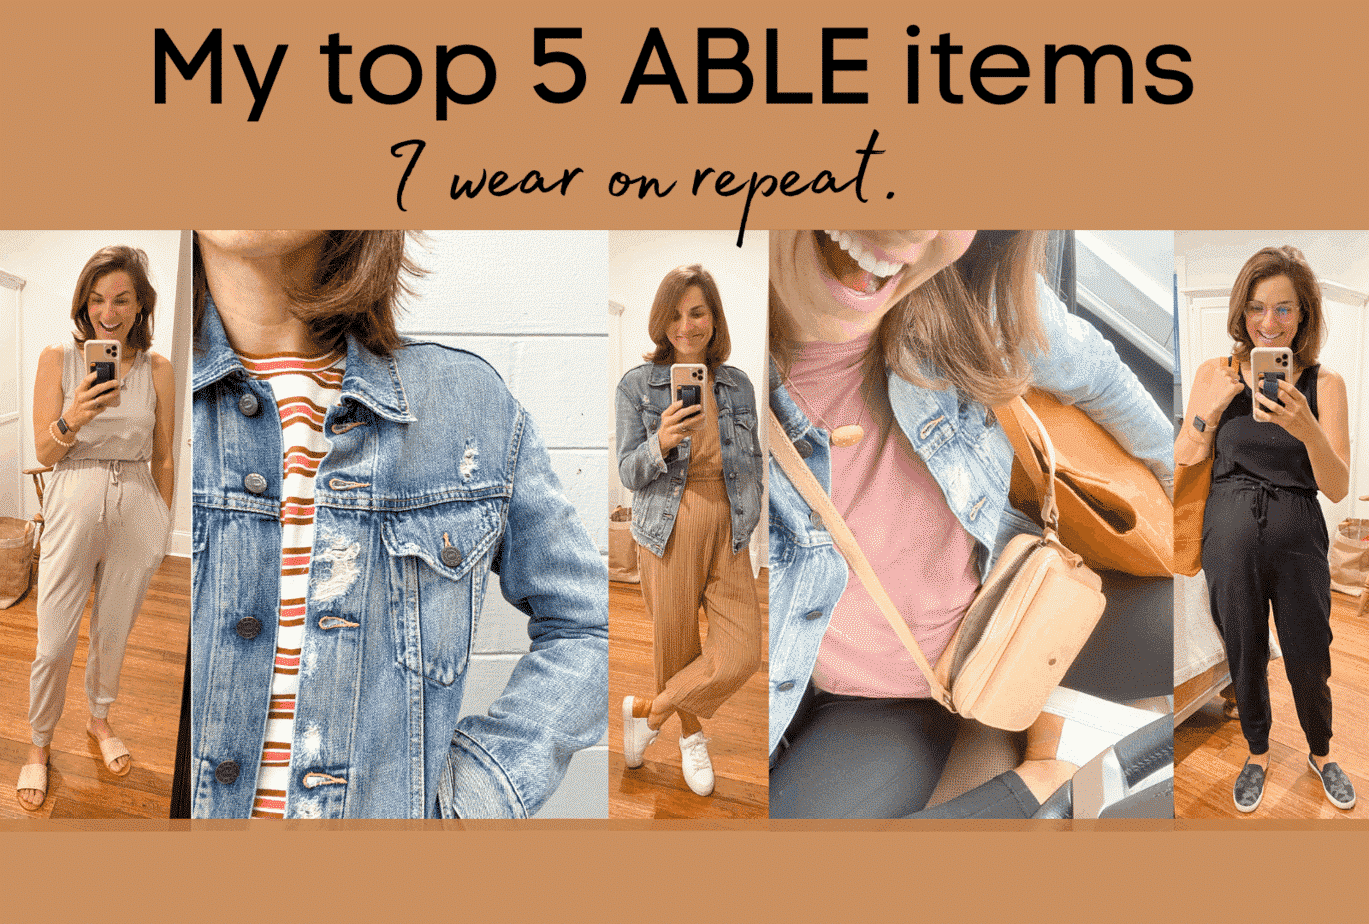 My Top 5 ABLE pieces I wear on repeat